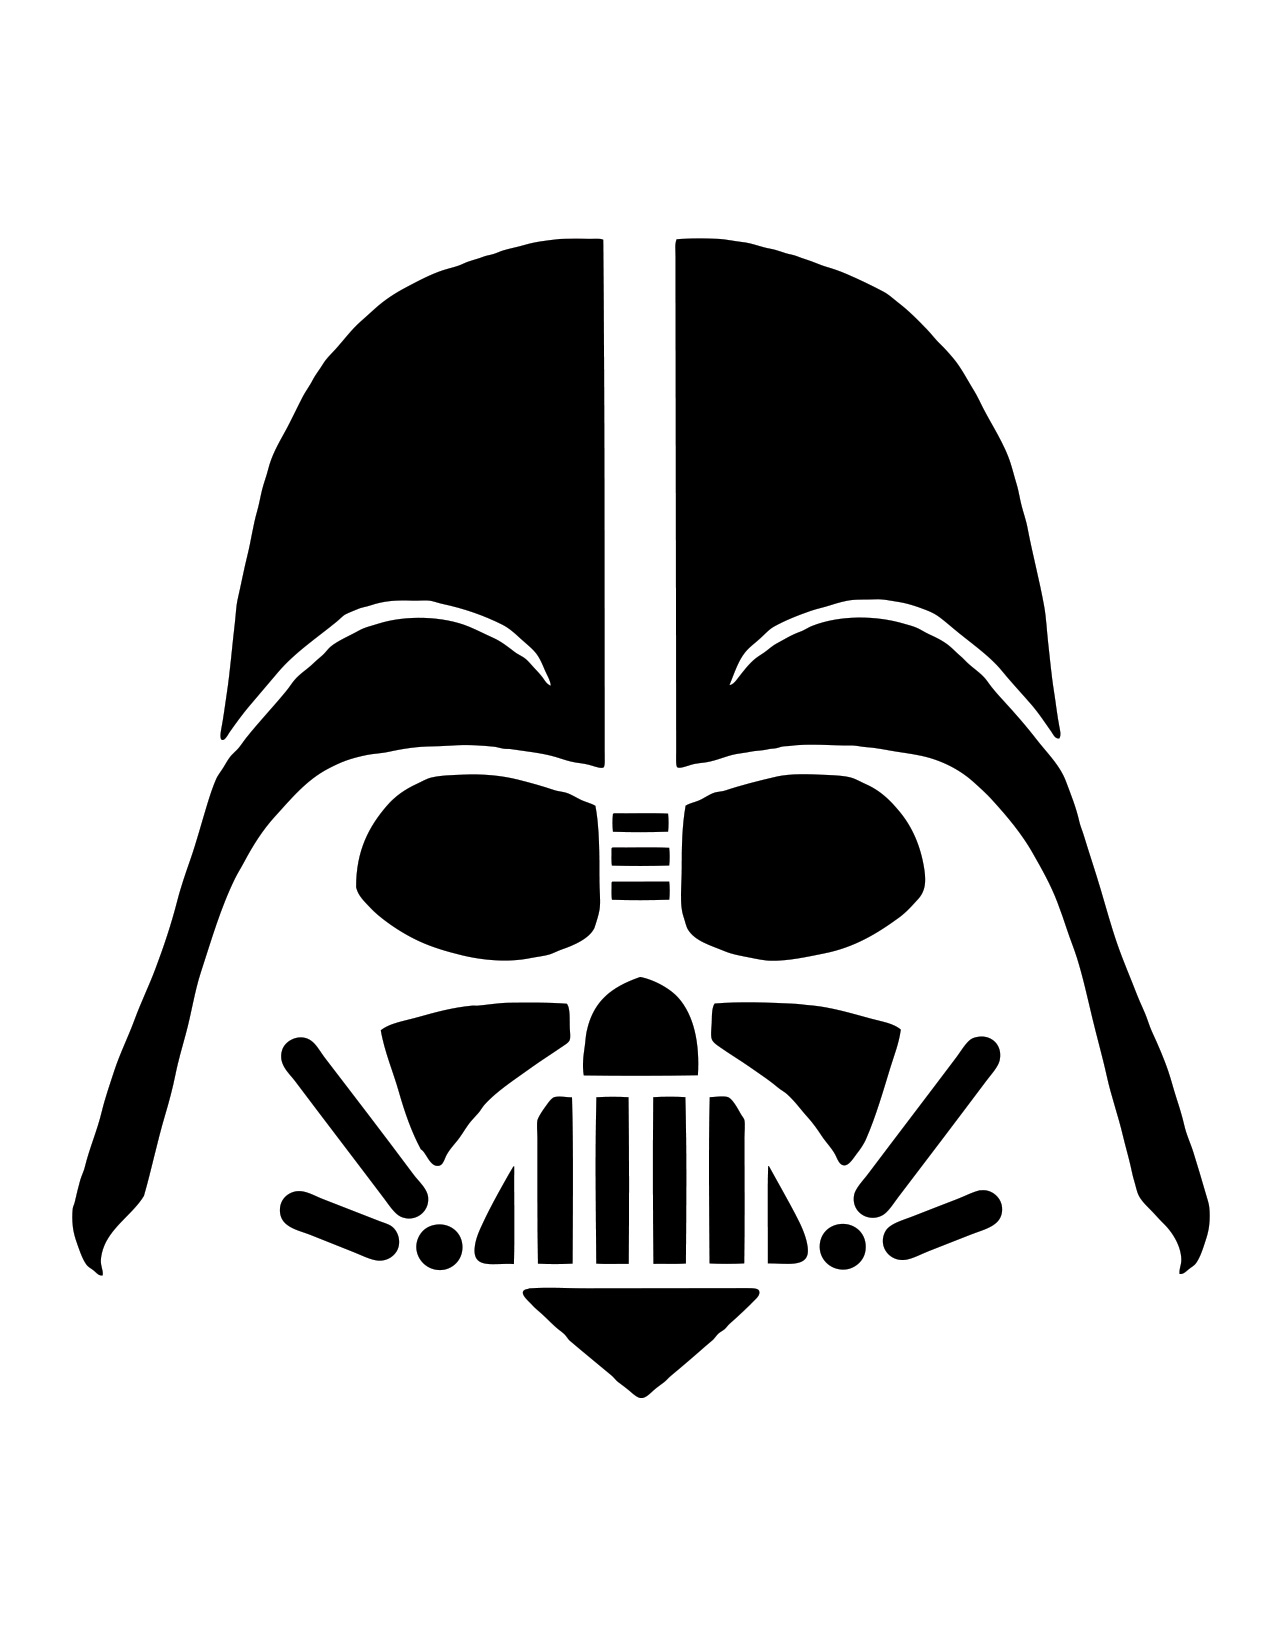 image relating to Star Wars Pumpkin Stencils Printable named 12 Star Wars pumpkin carving stencils - STACK JB Hello-Fi